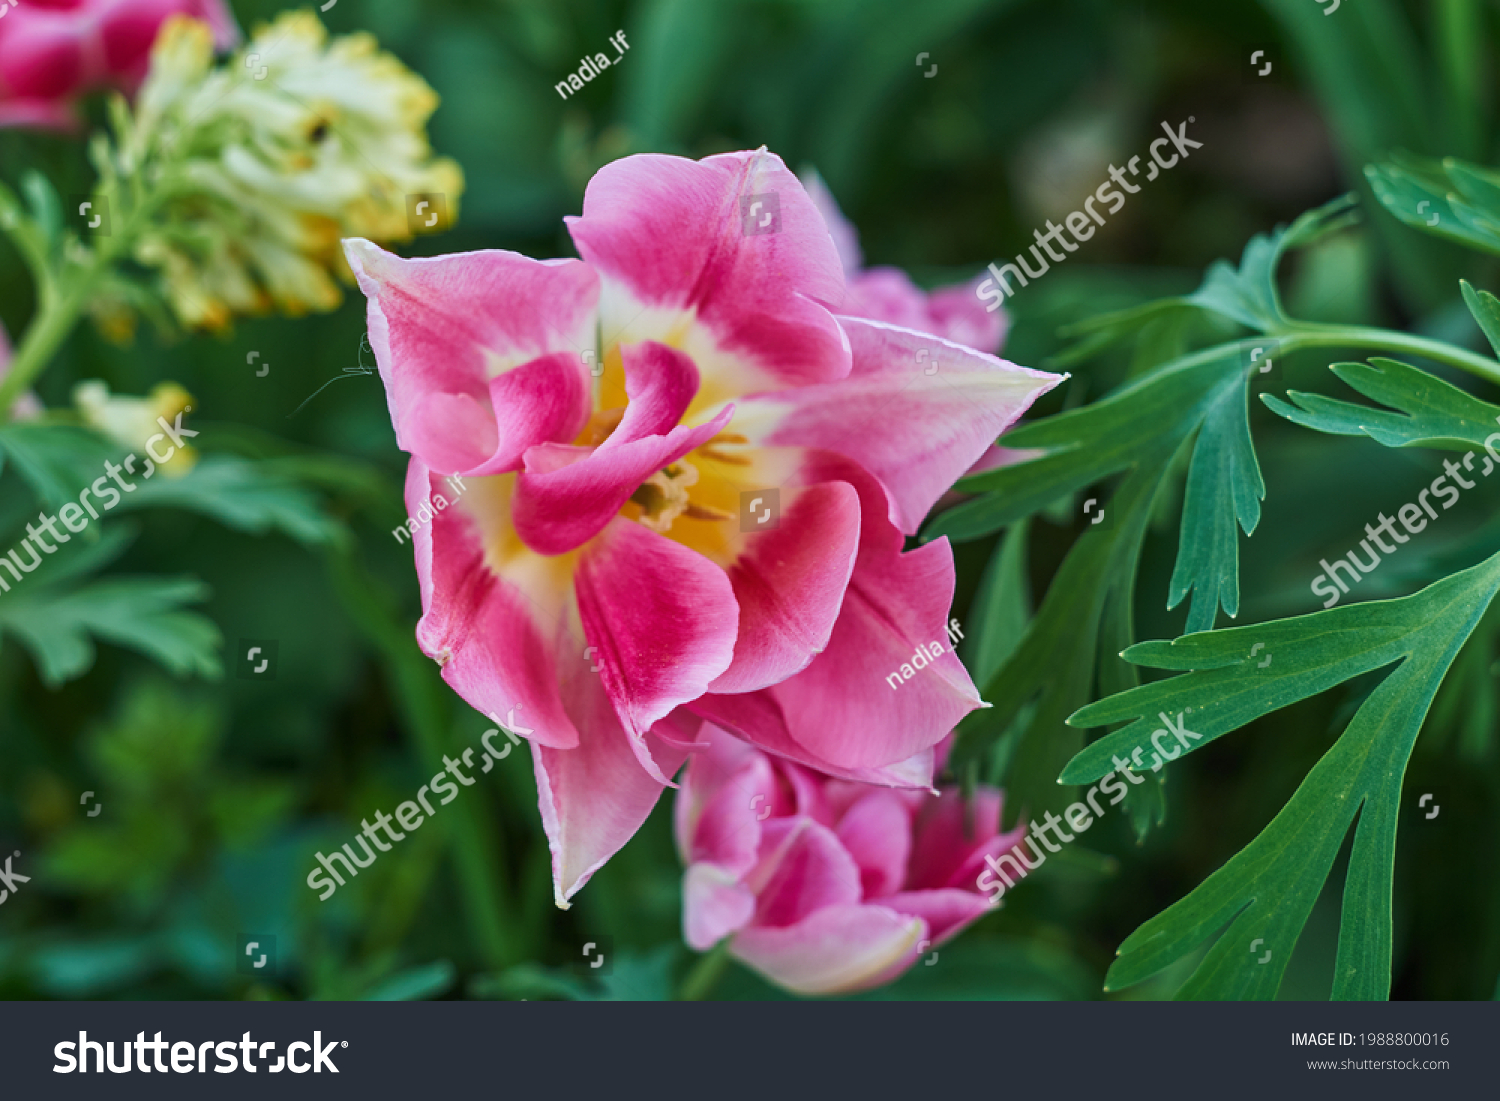 Delicate pink tulips in the garden on a natural green background. Selective soft focus.  #1988800016